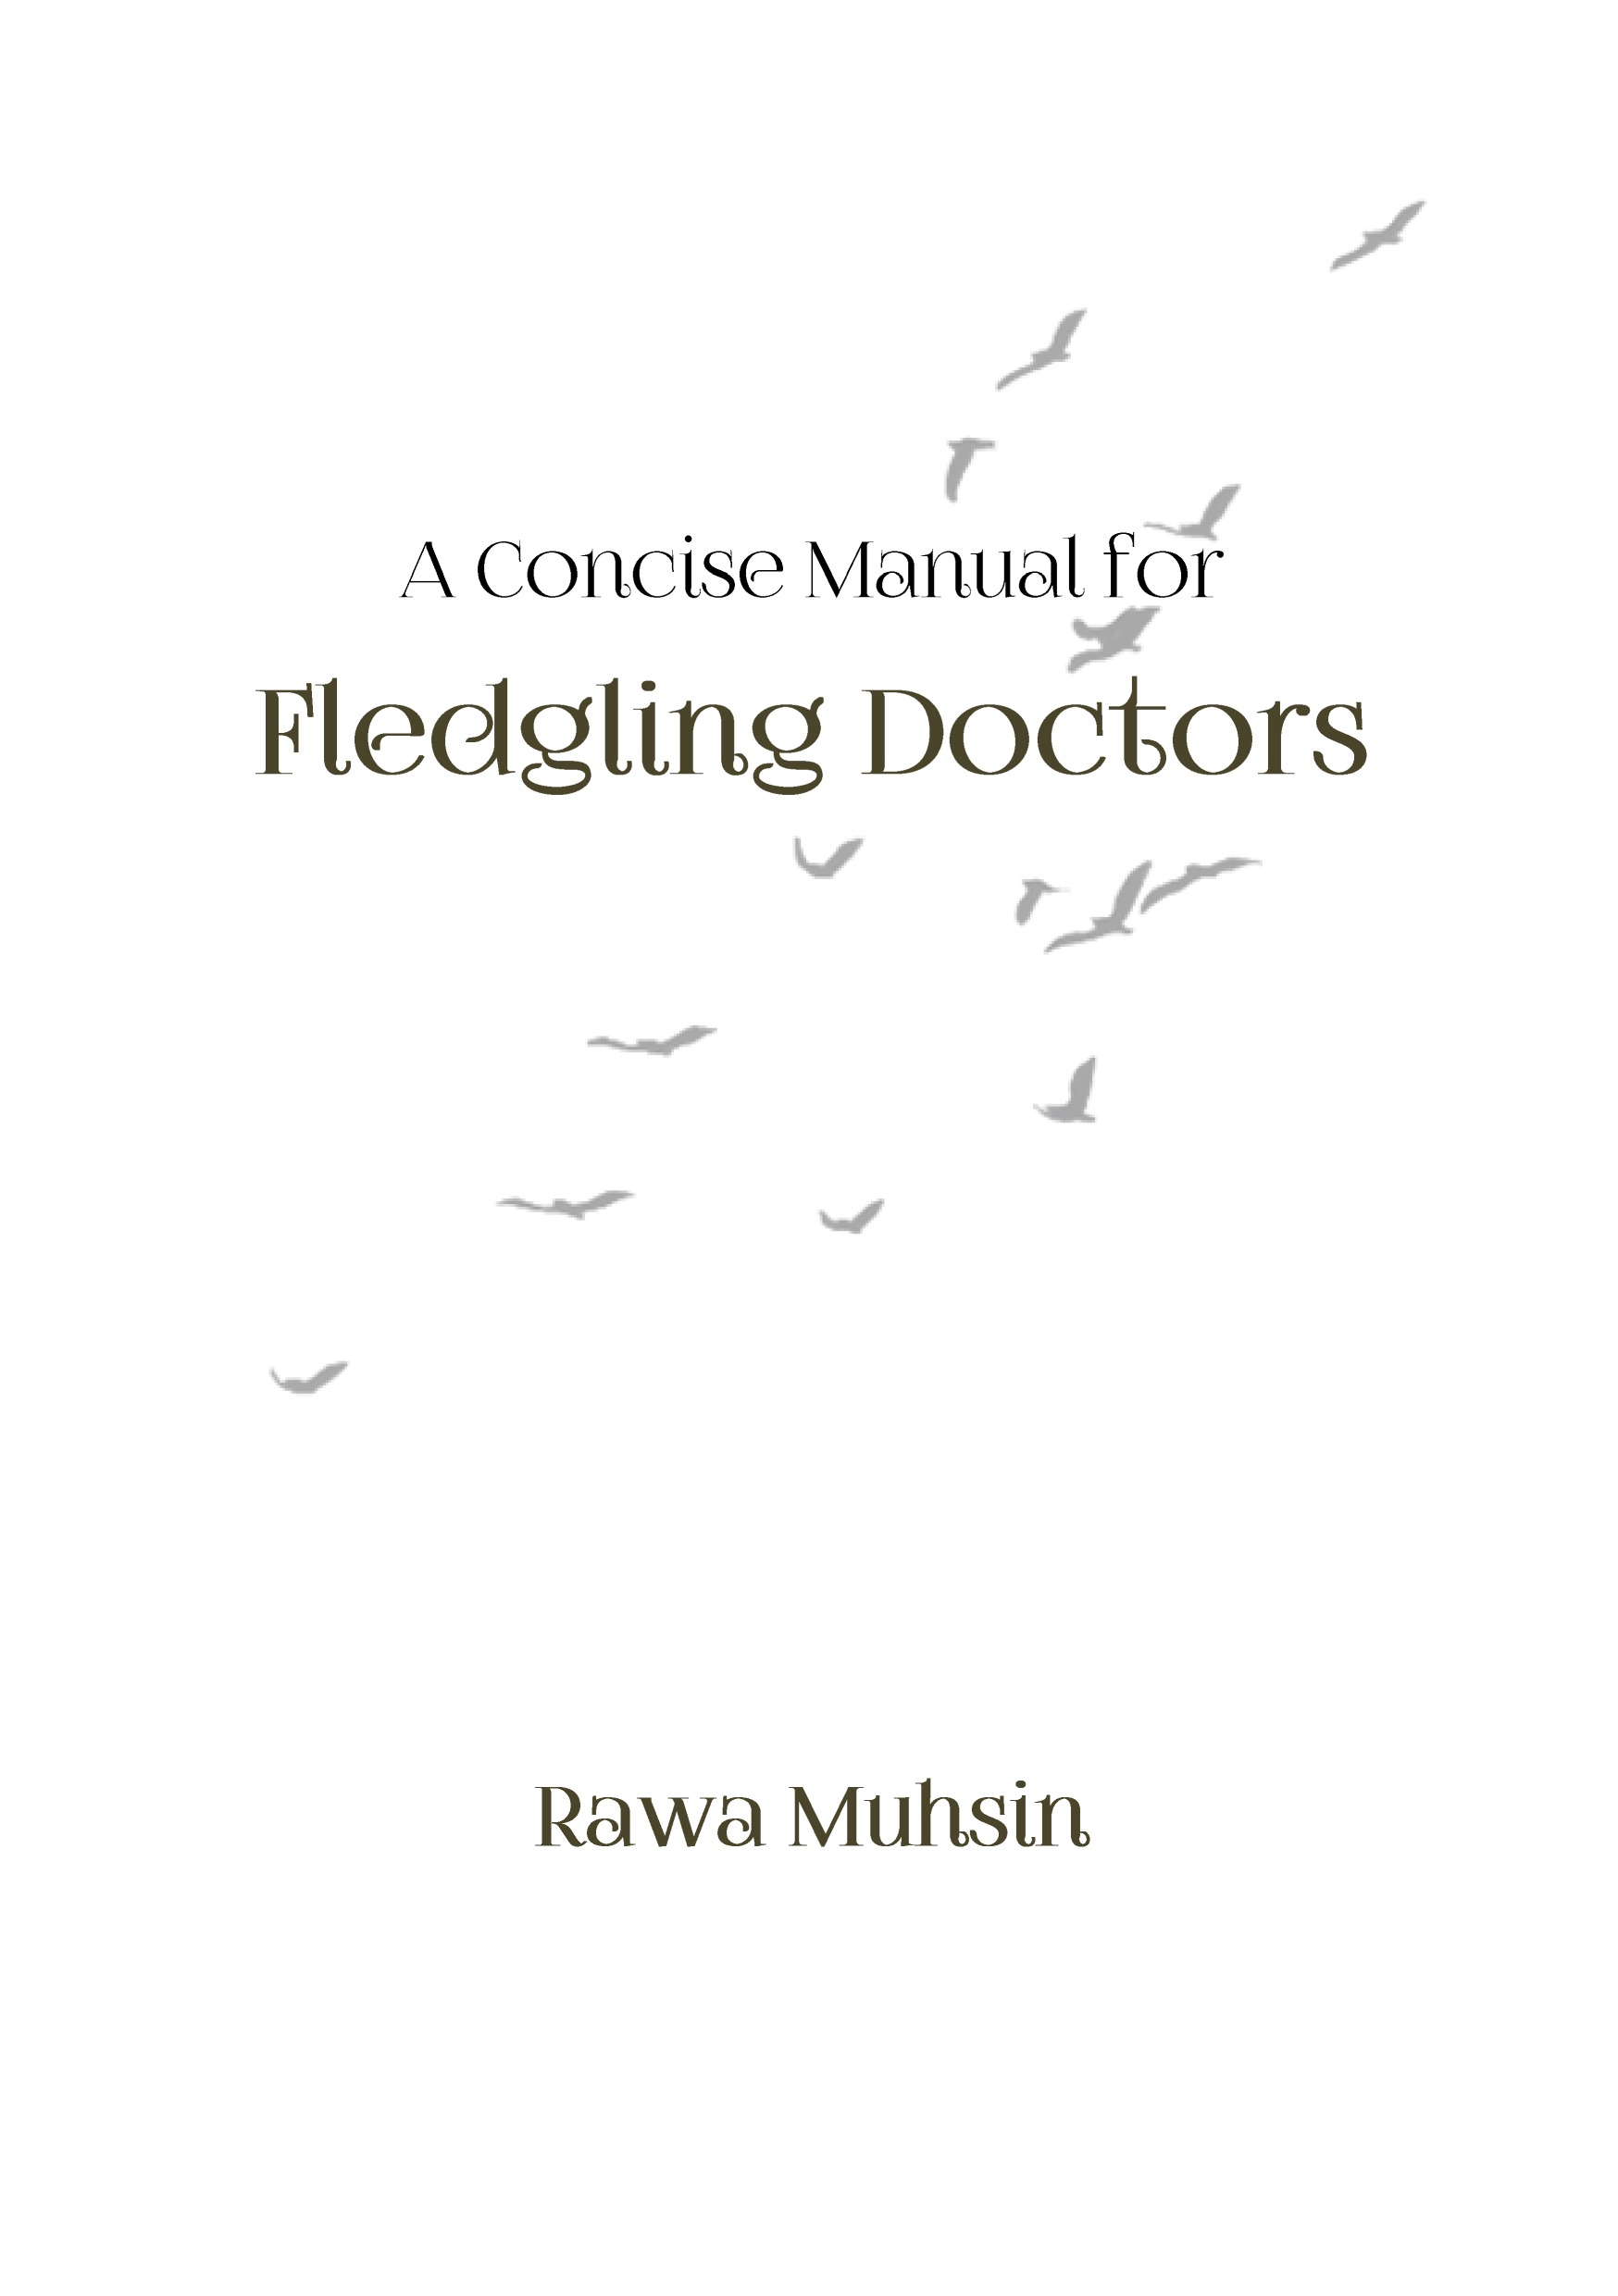 A Concise Manual for Fledgling Doctors  by  Rawa Muhsin